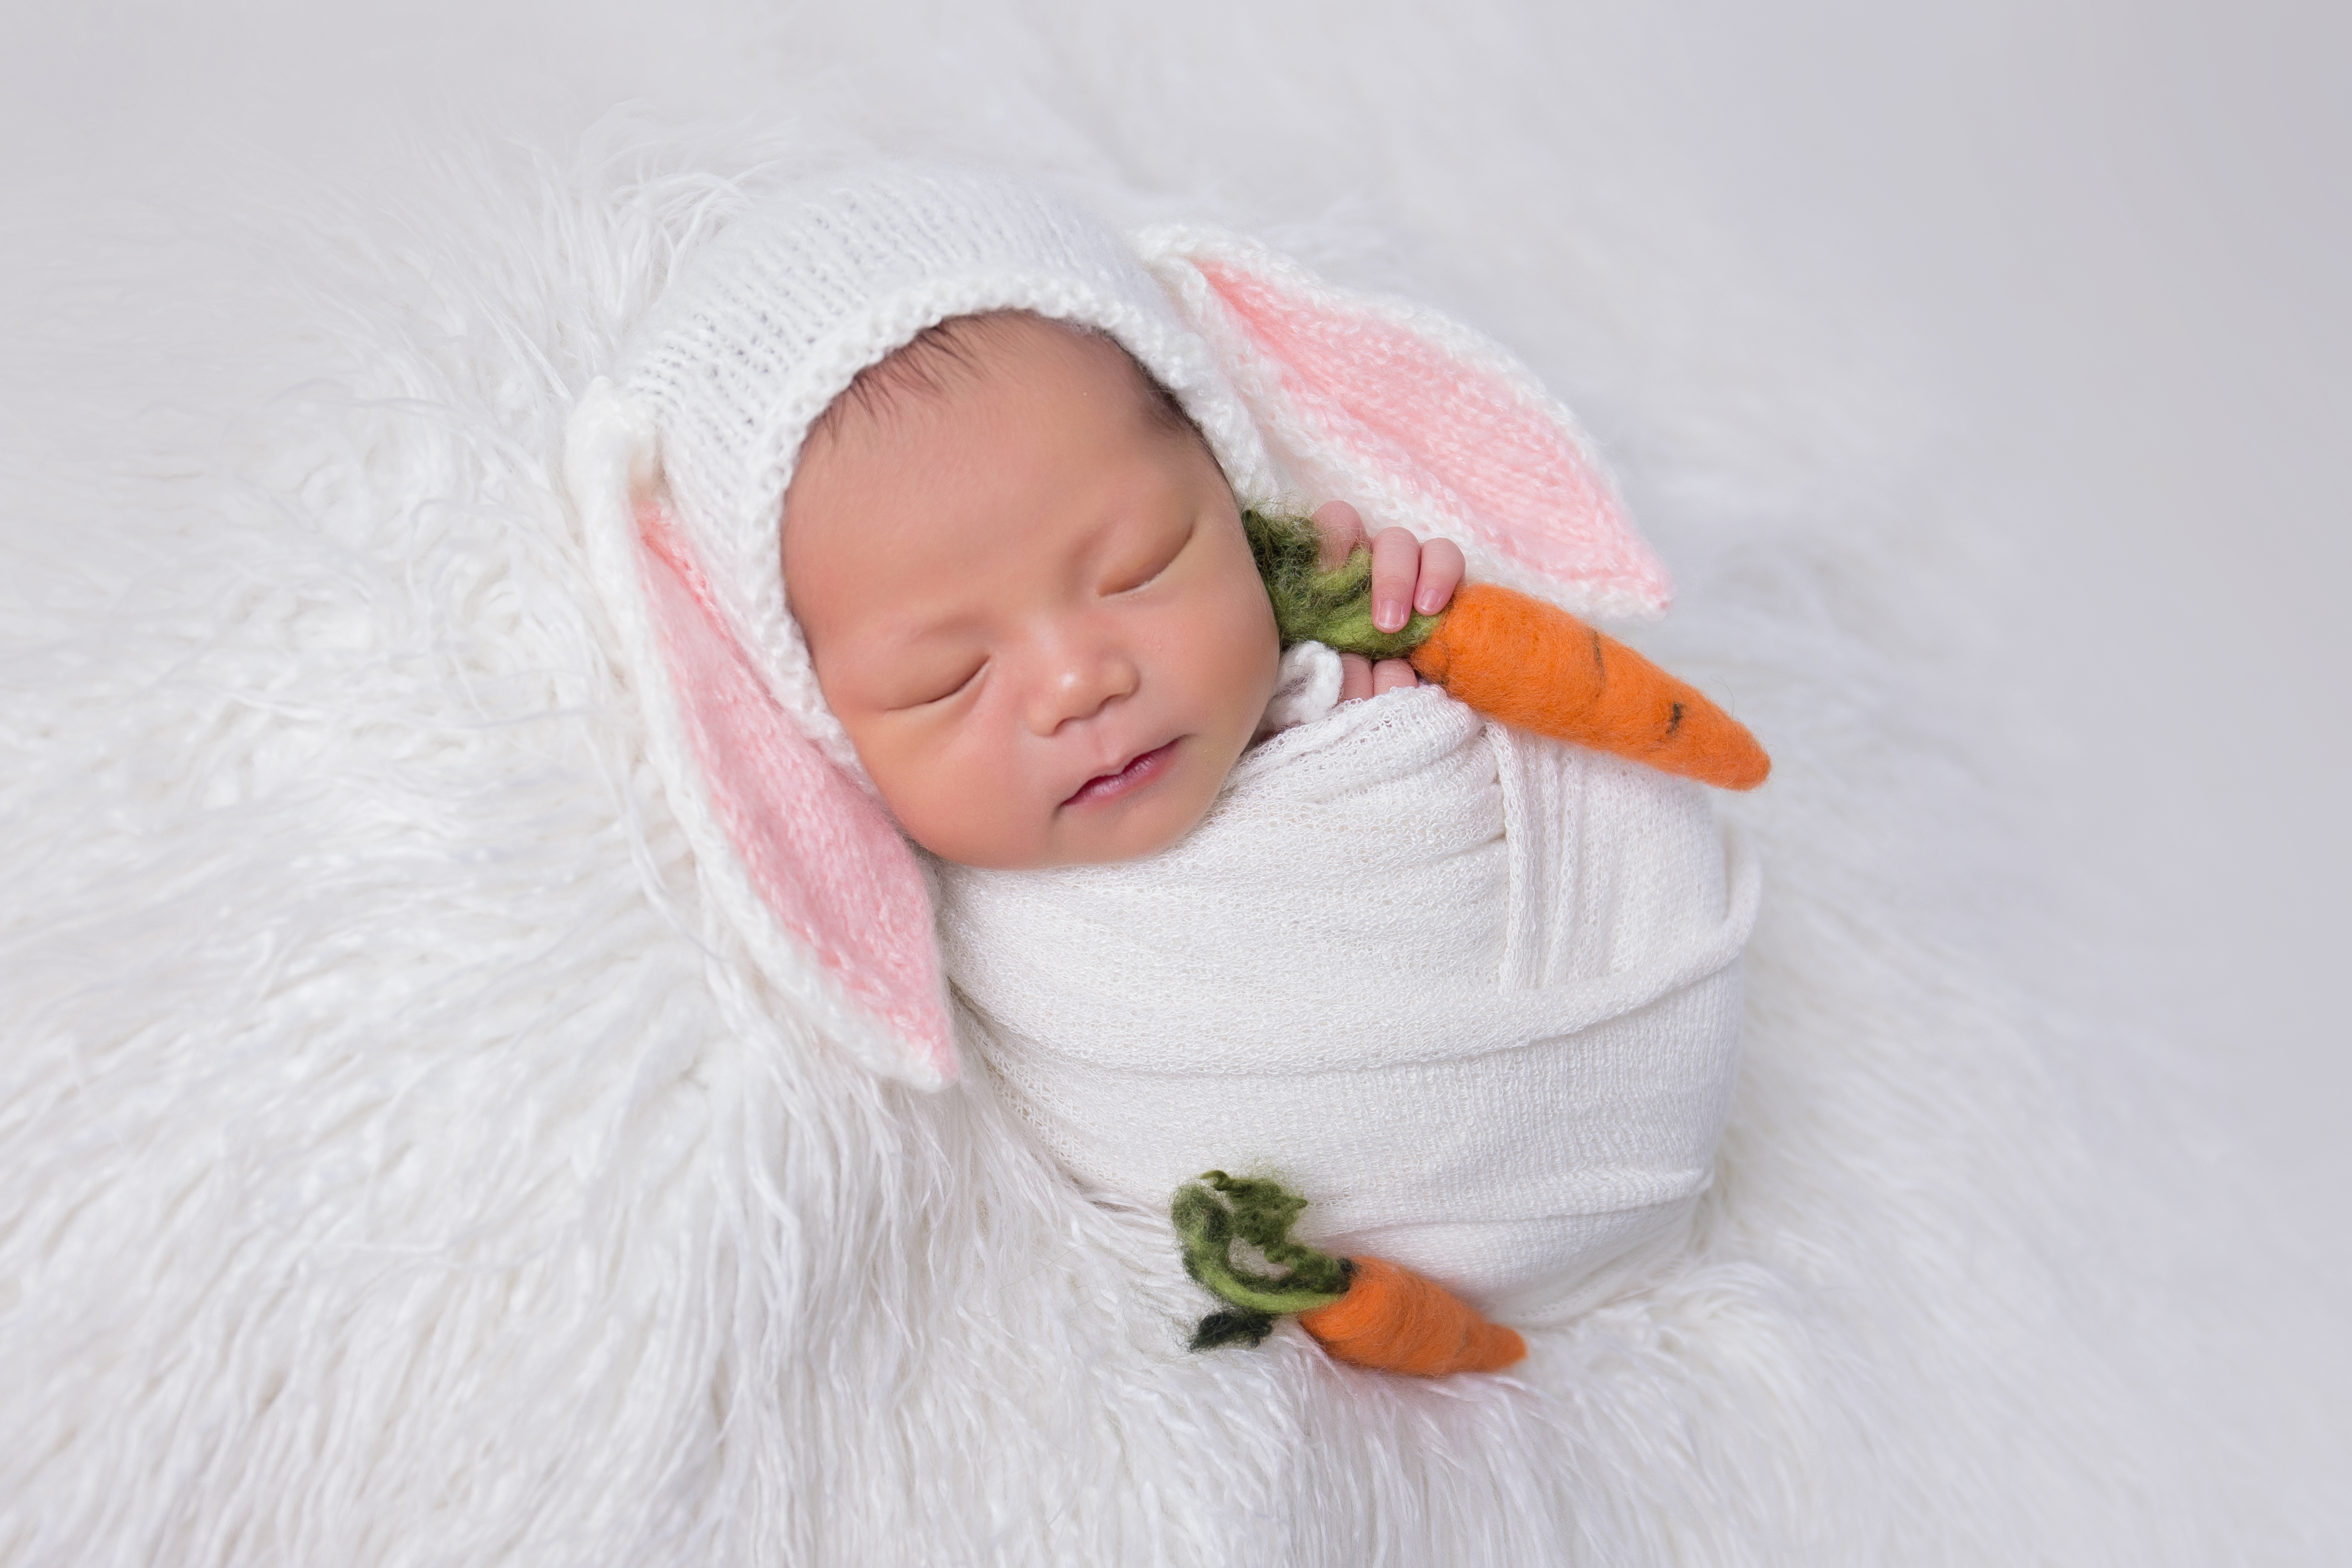 Baby Hailey ~ 8days old